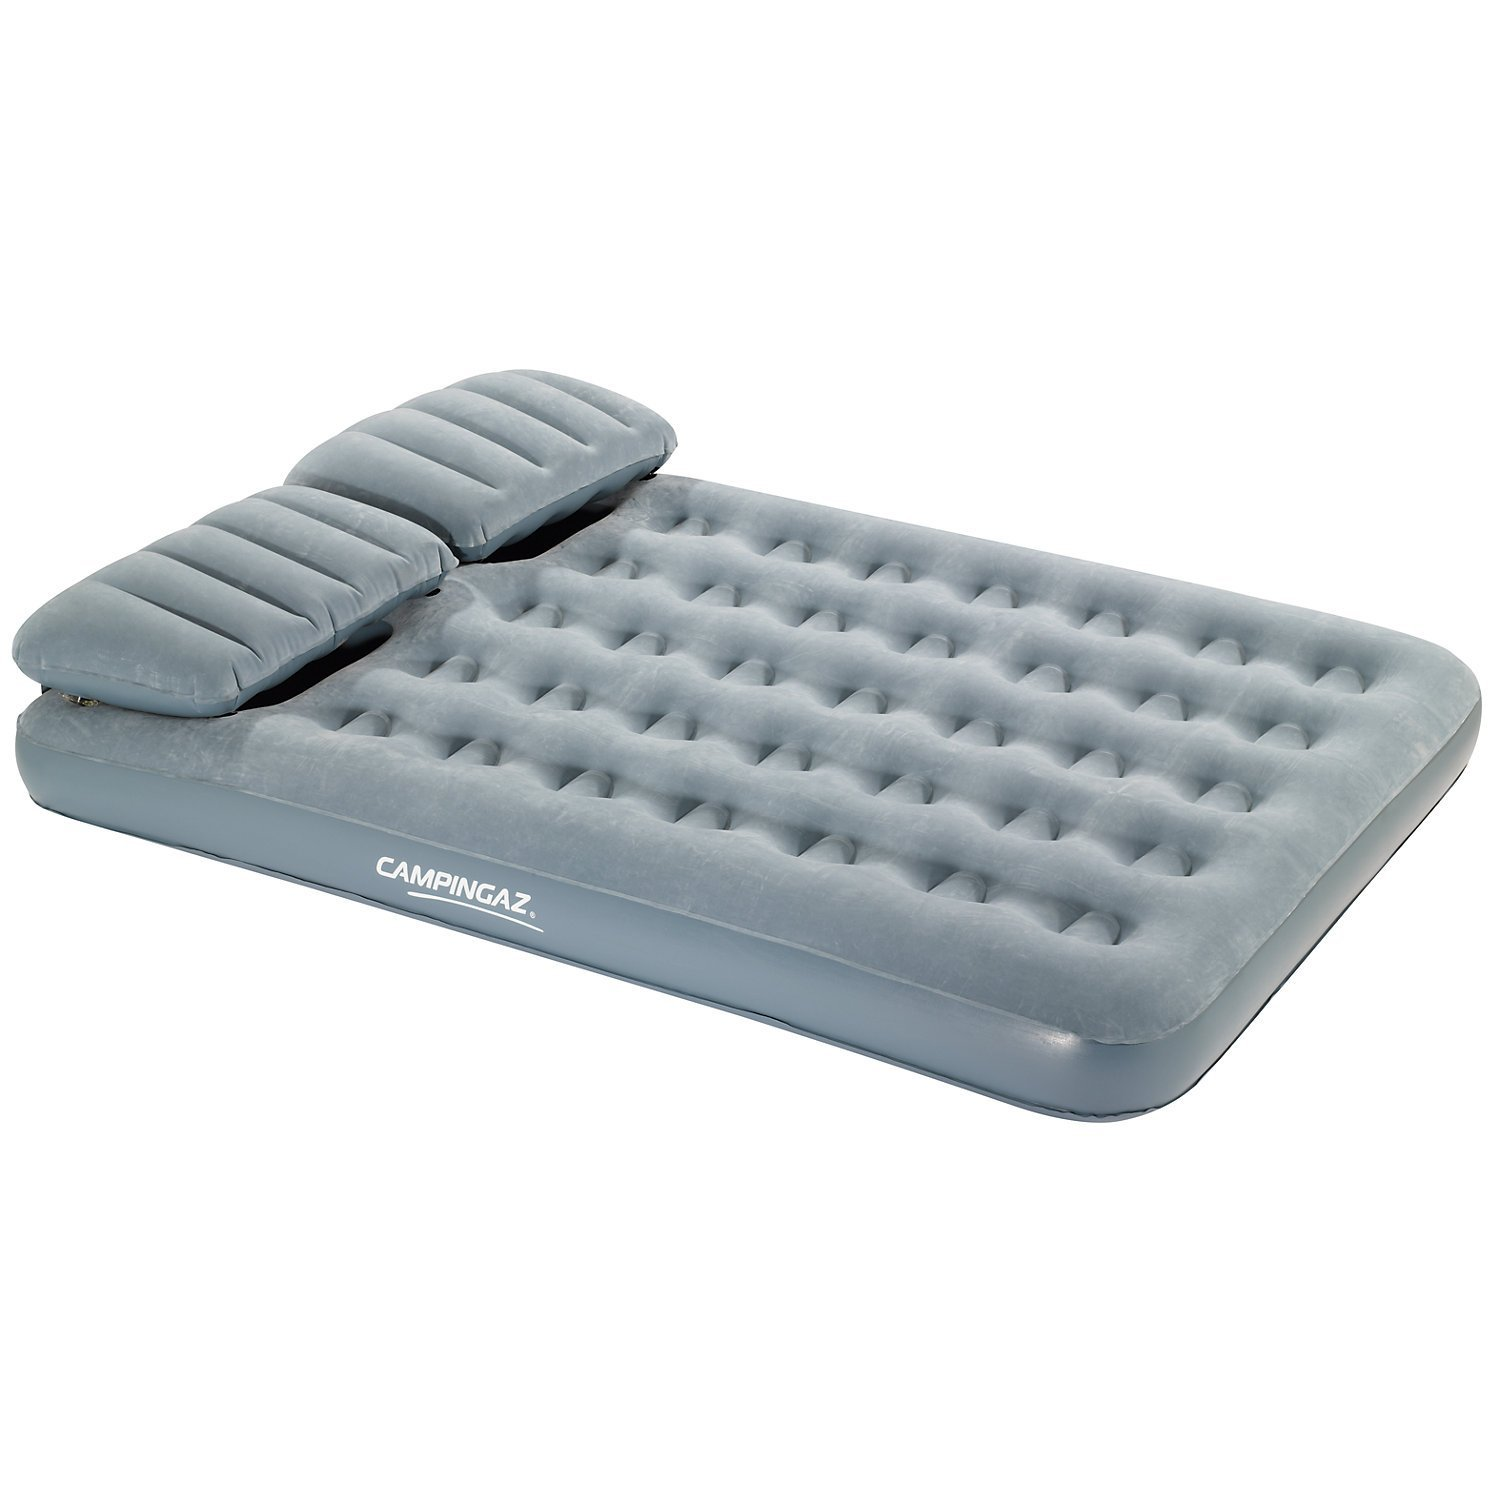 matelas gonflable avec oreillers 2 places campingaz smart. Black Bedroom Furniture Sets. Home Design Ideas